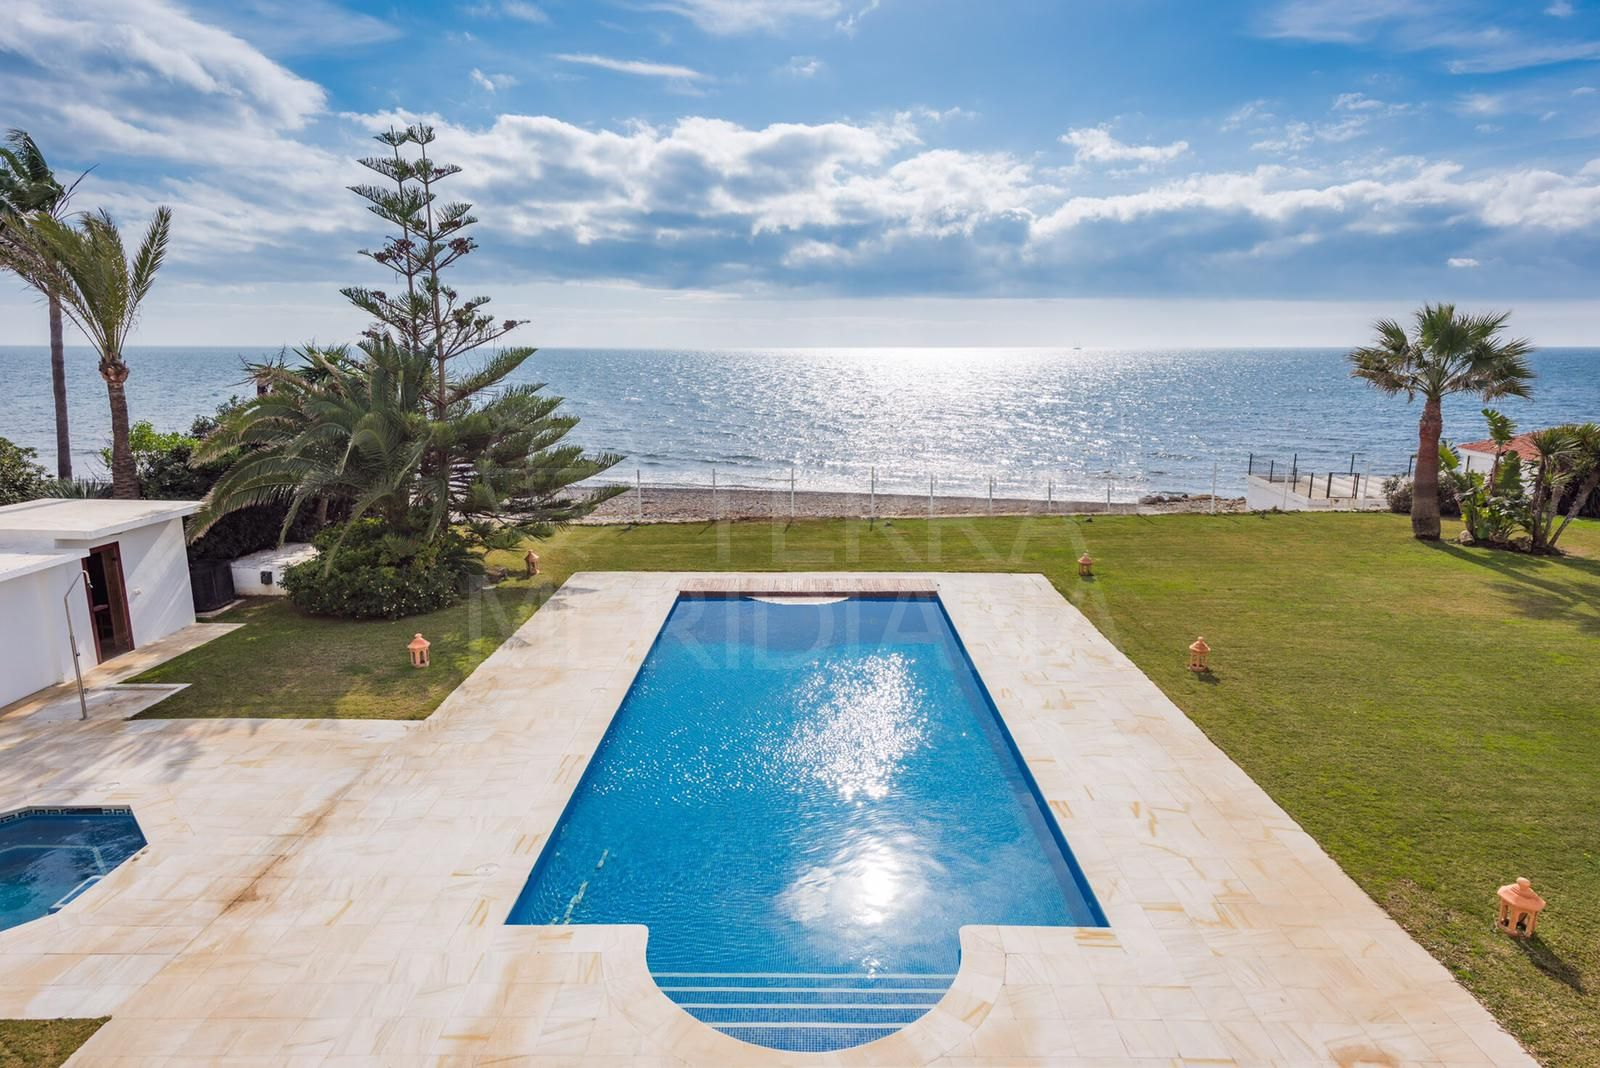 Breathtaking palacete style luxury beachfront villa with far-reaching sea views for sale in Guadalmina Baja, Casasola